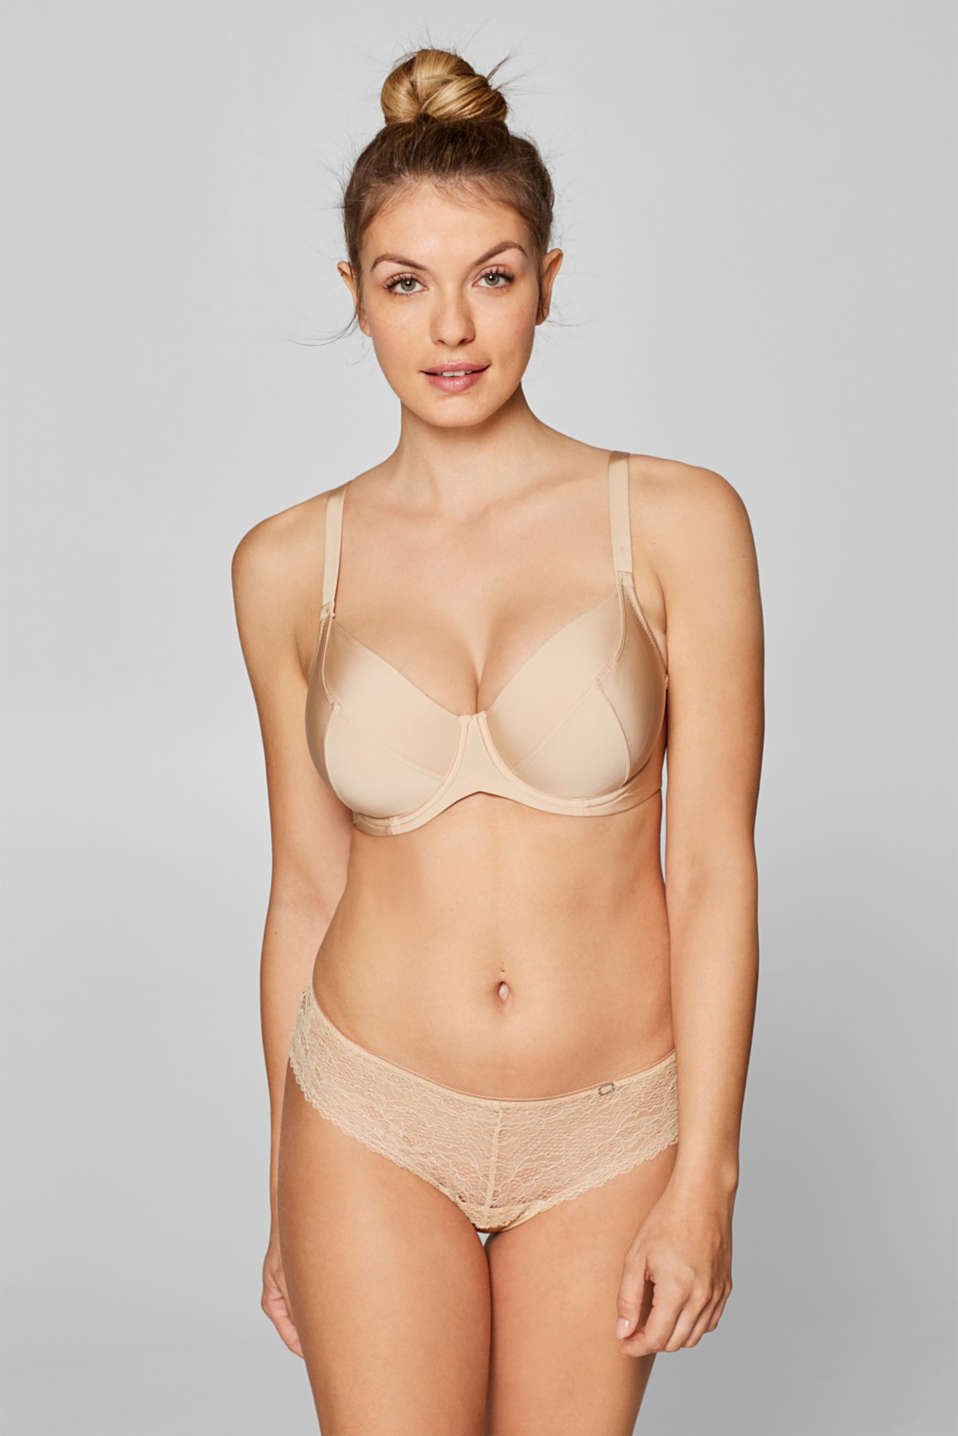 Esprit - Unwattierter Basic-Bügel-BH für Big Cups